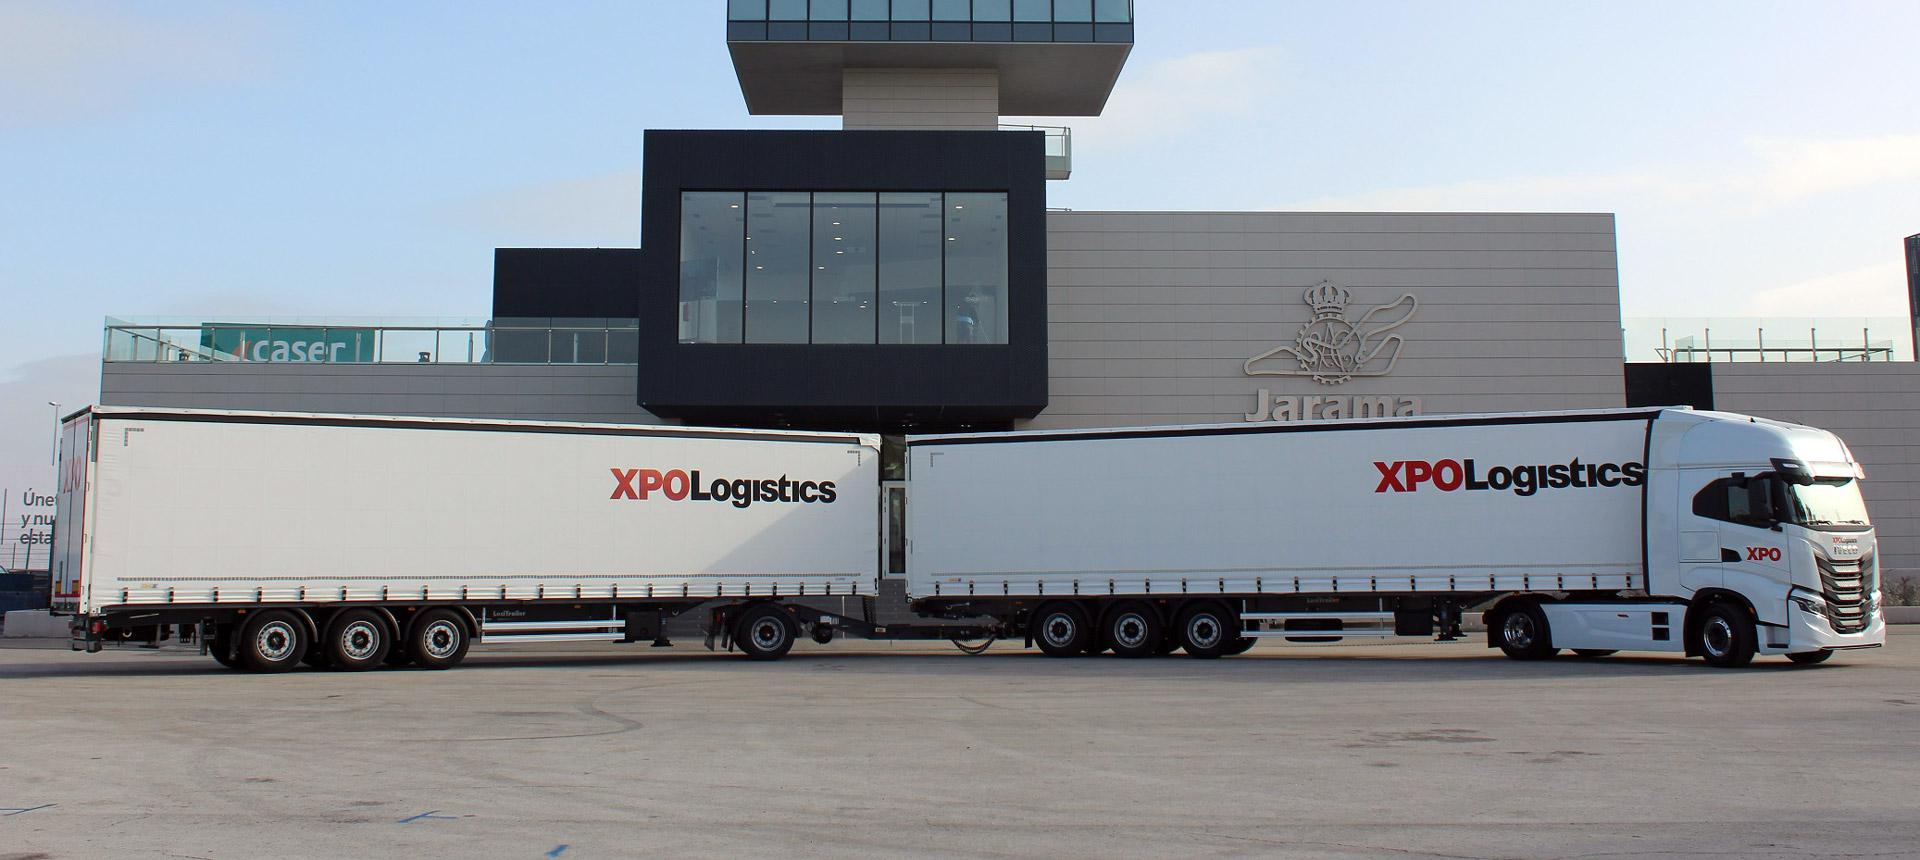 One of XPO's new duo-trailers in Spain, two full-sized trailers getting towed behind a single tractor to reduce emissions.